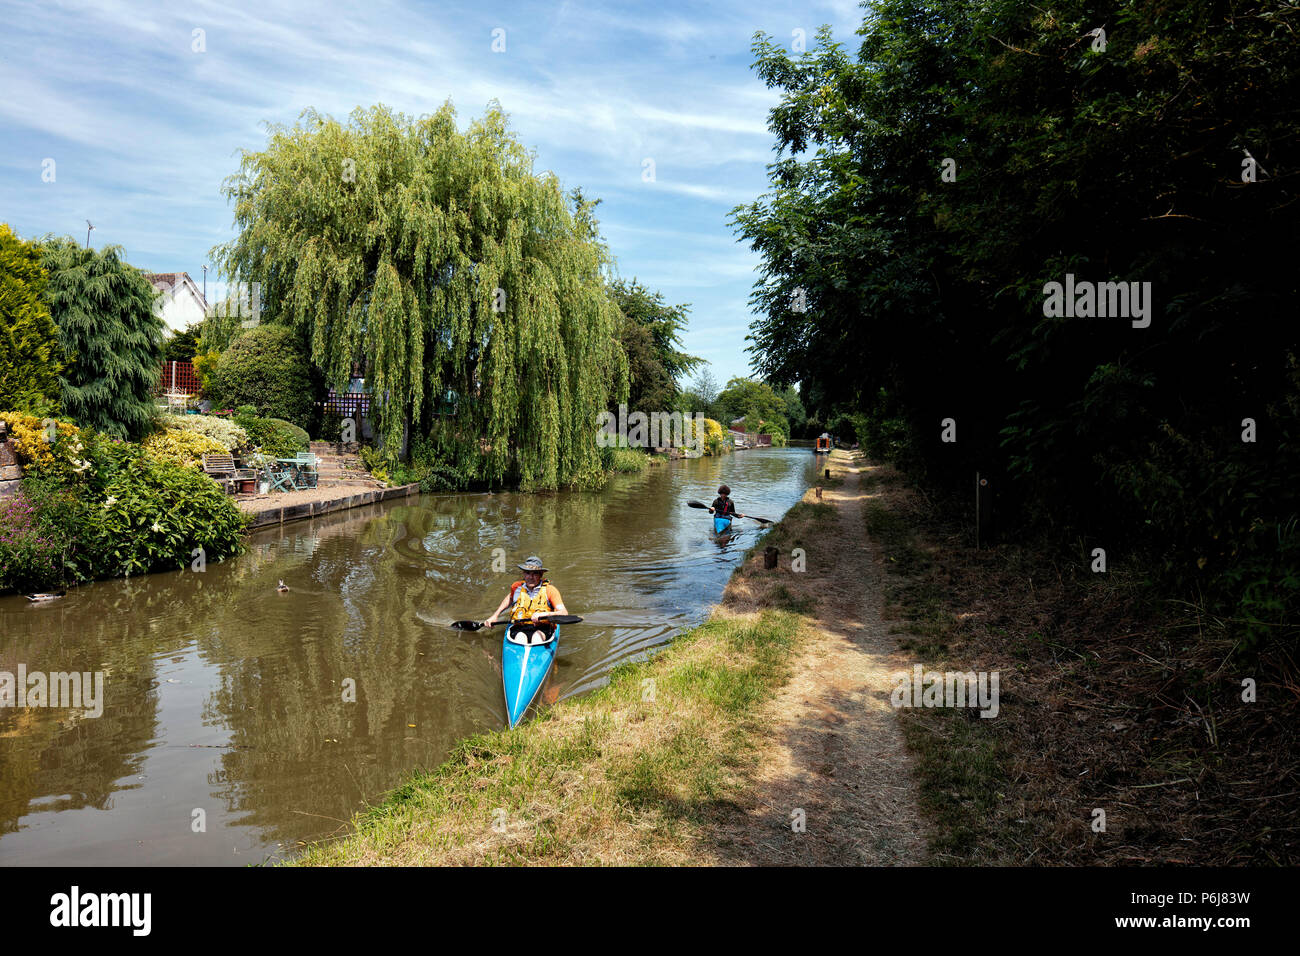 Two kayaks on the Oxford Canal on a sunny, summer day at Cropredy near Banbury - Stock Image